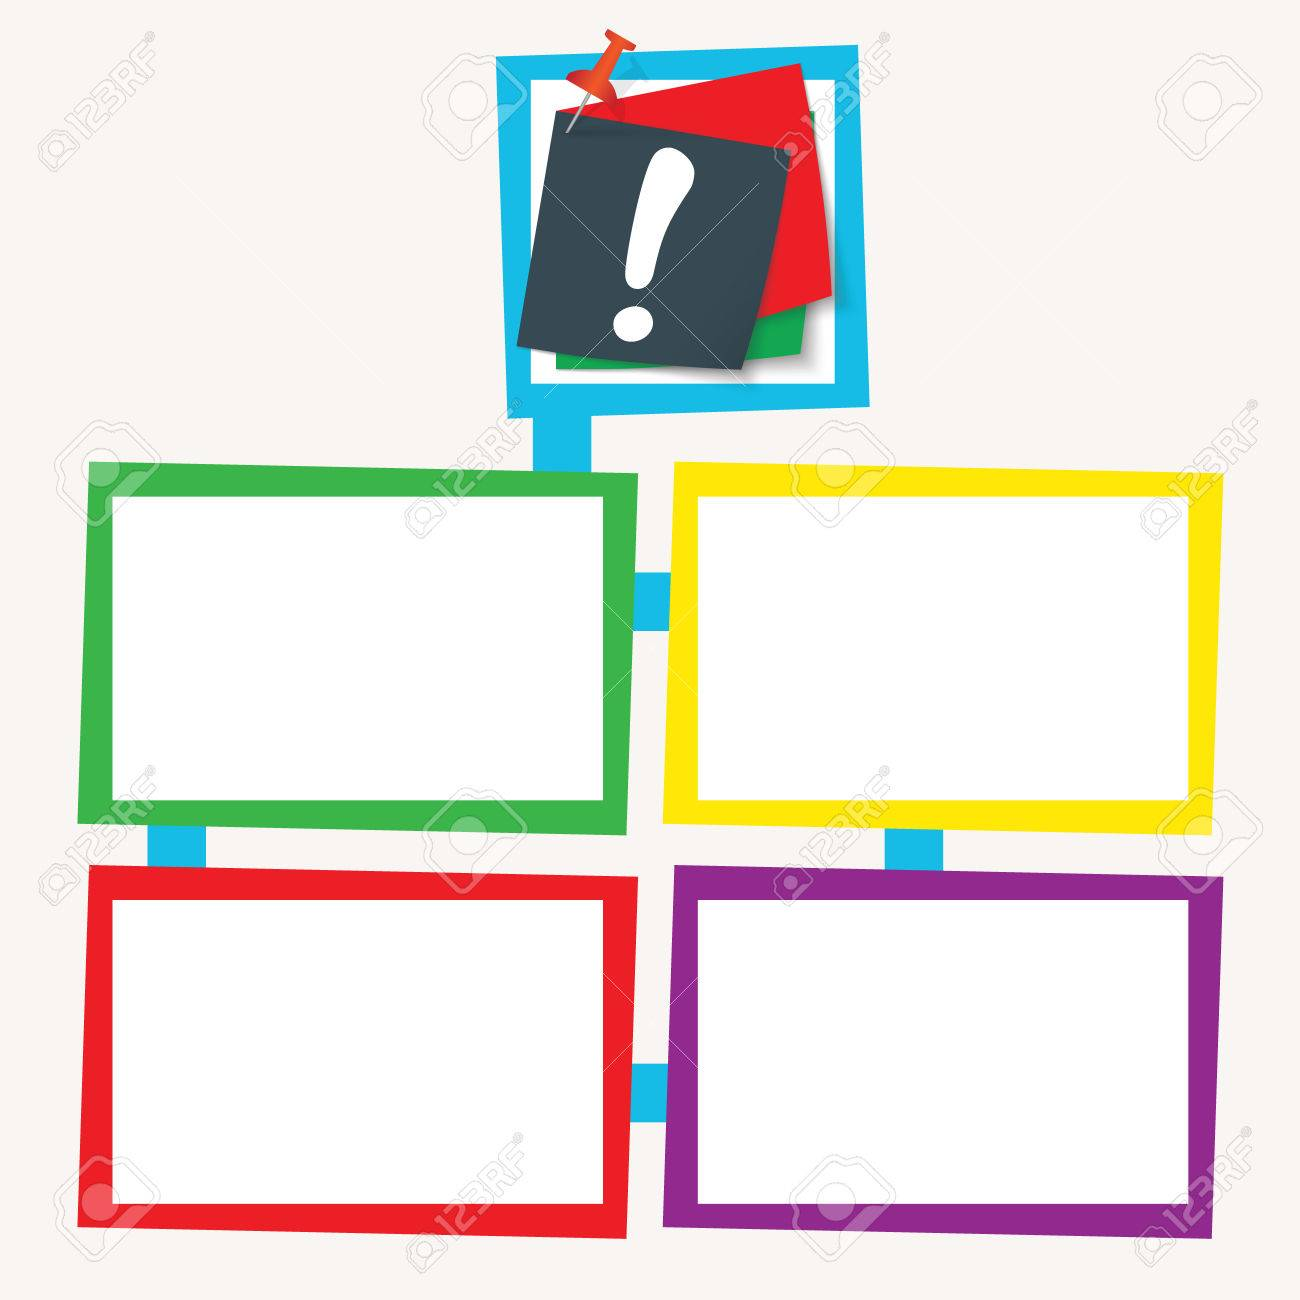 Four Colored Frames For Your Text With Exclamation Mark Royalty Free ...